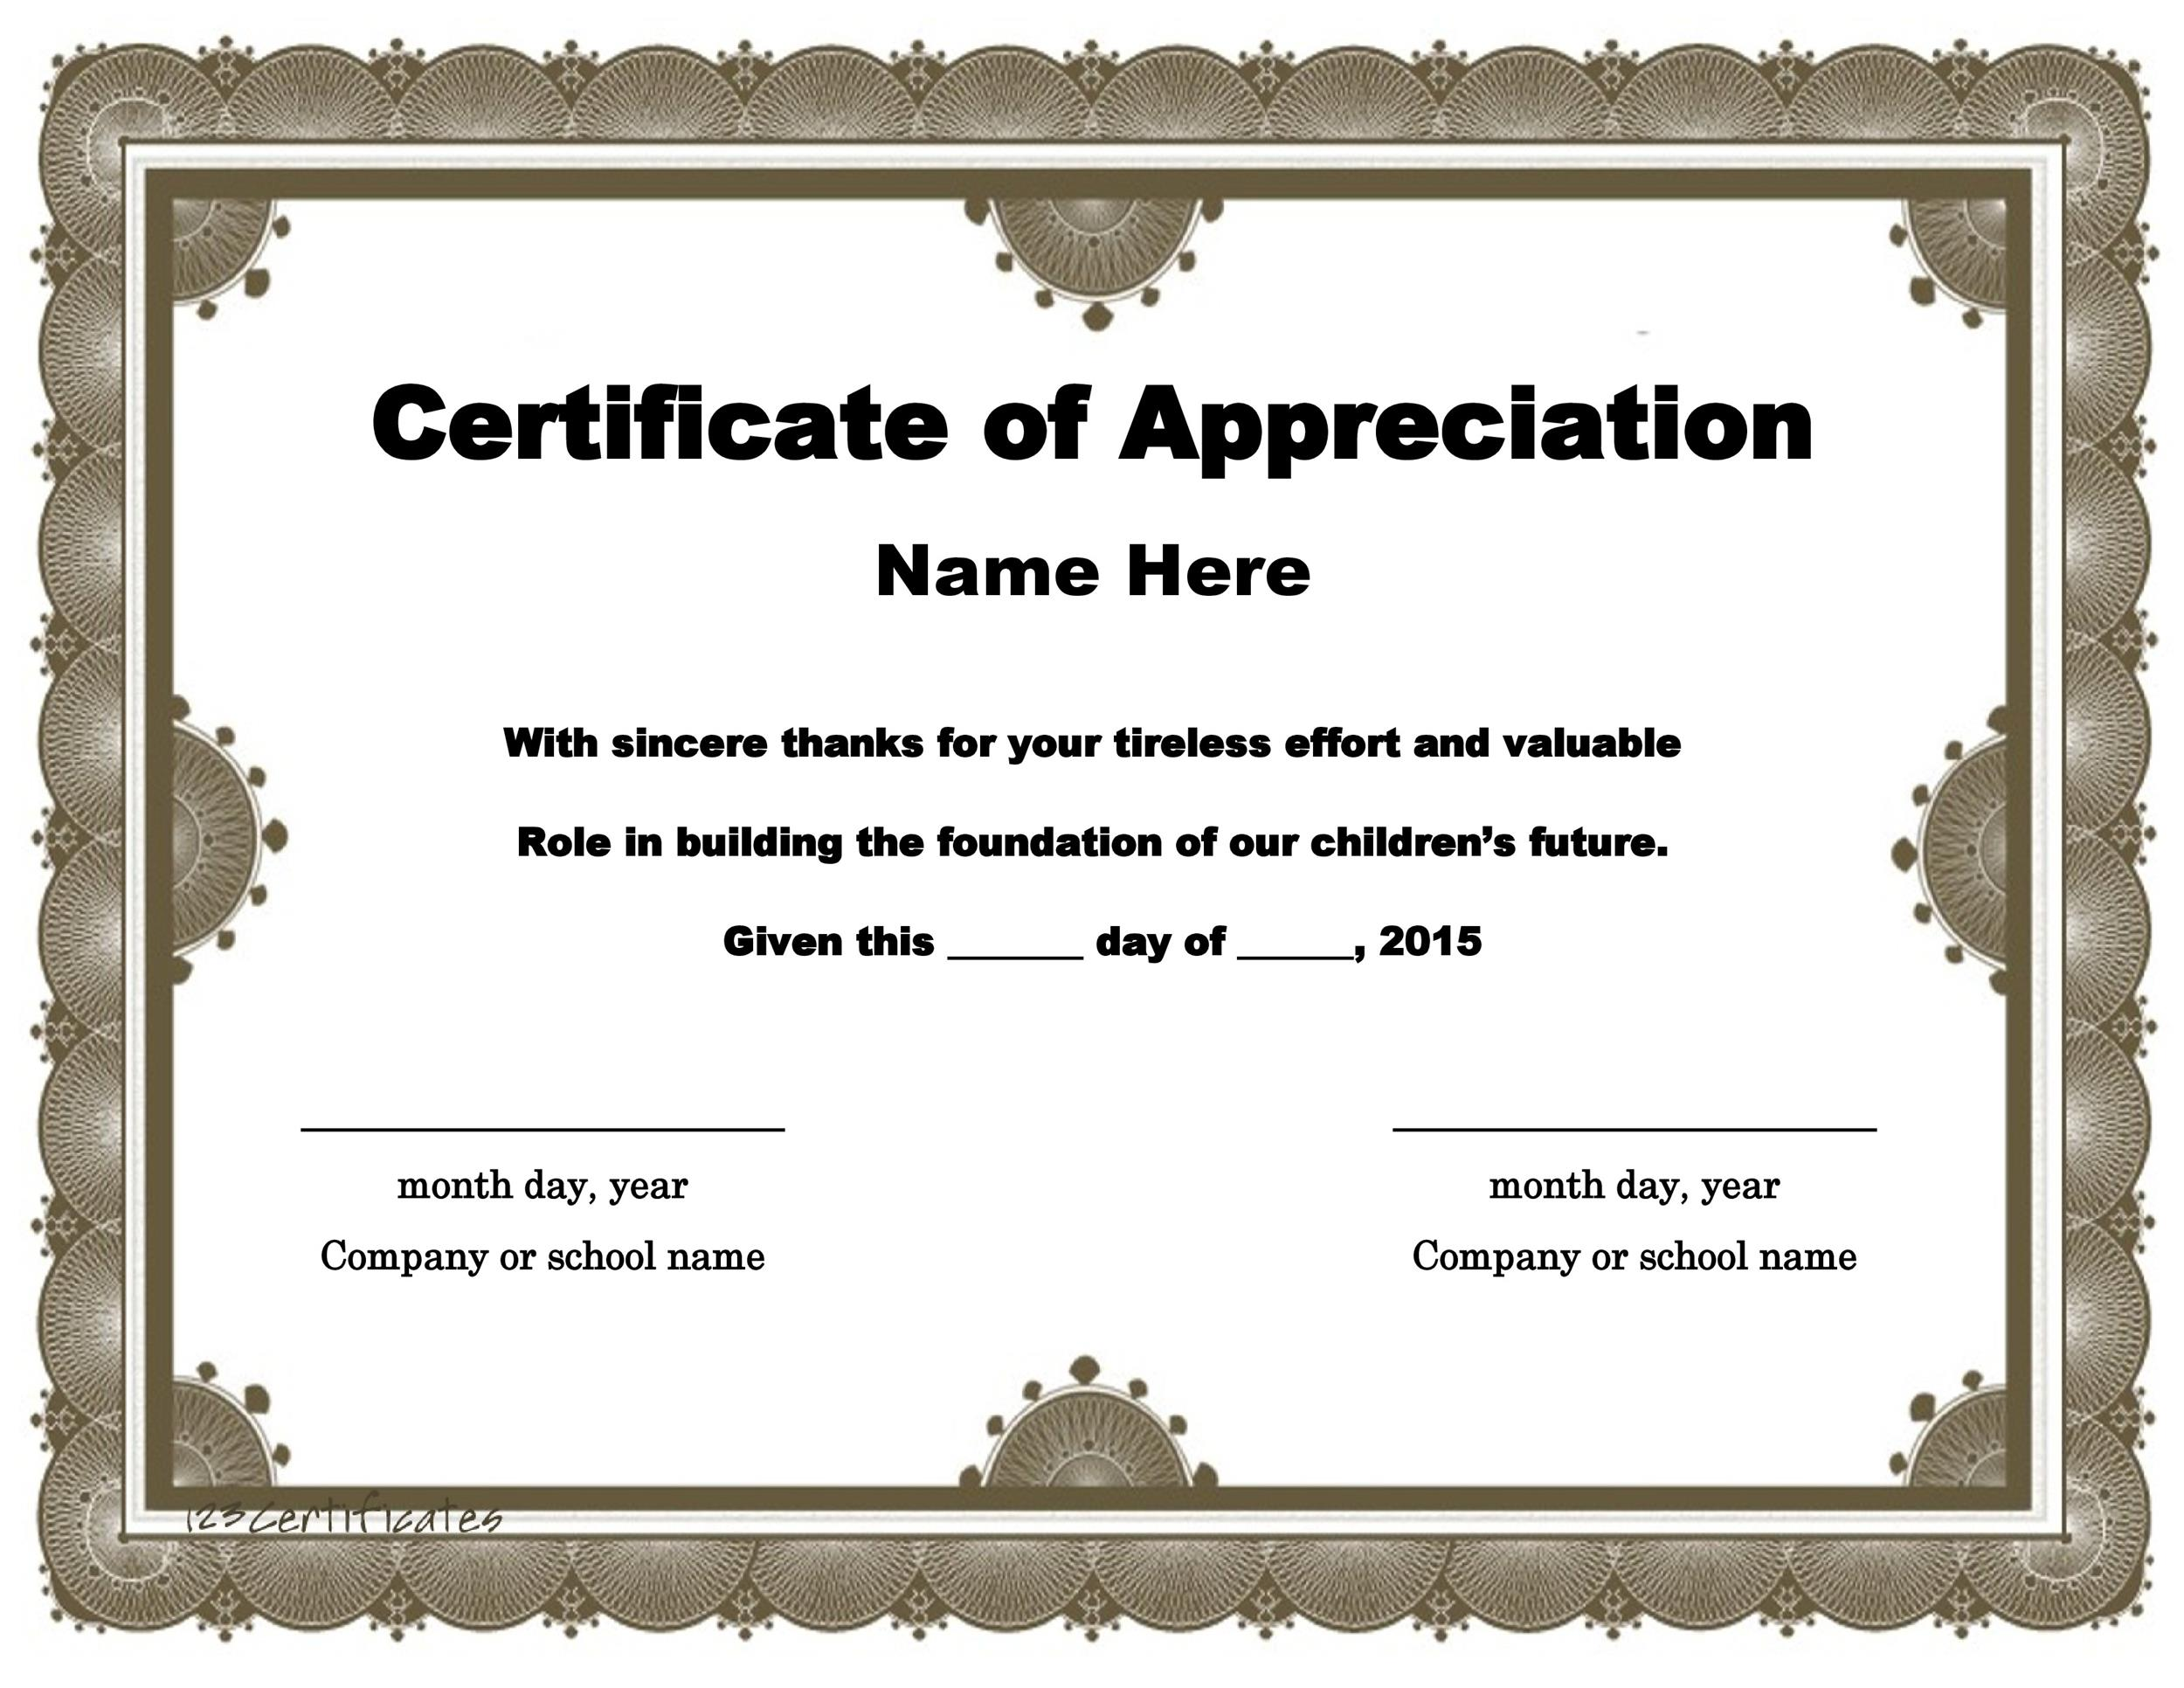 free certificate of appreciation 03 - Employee Of The Year Certificate Free Template